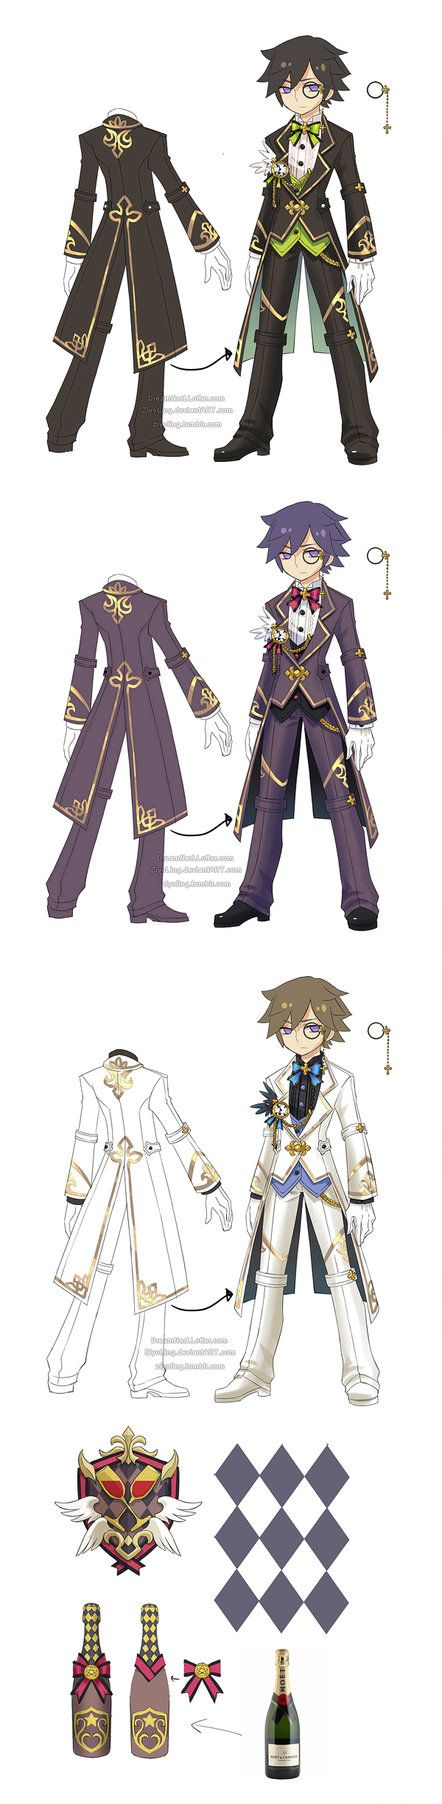 Google themes dragon nest - Costume Weapon Designs Of A Restaurant Theme For Dragon Nest Cleric In 2013